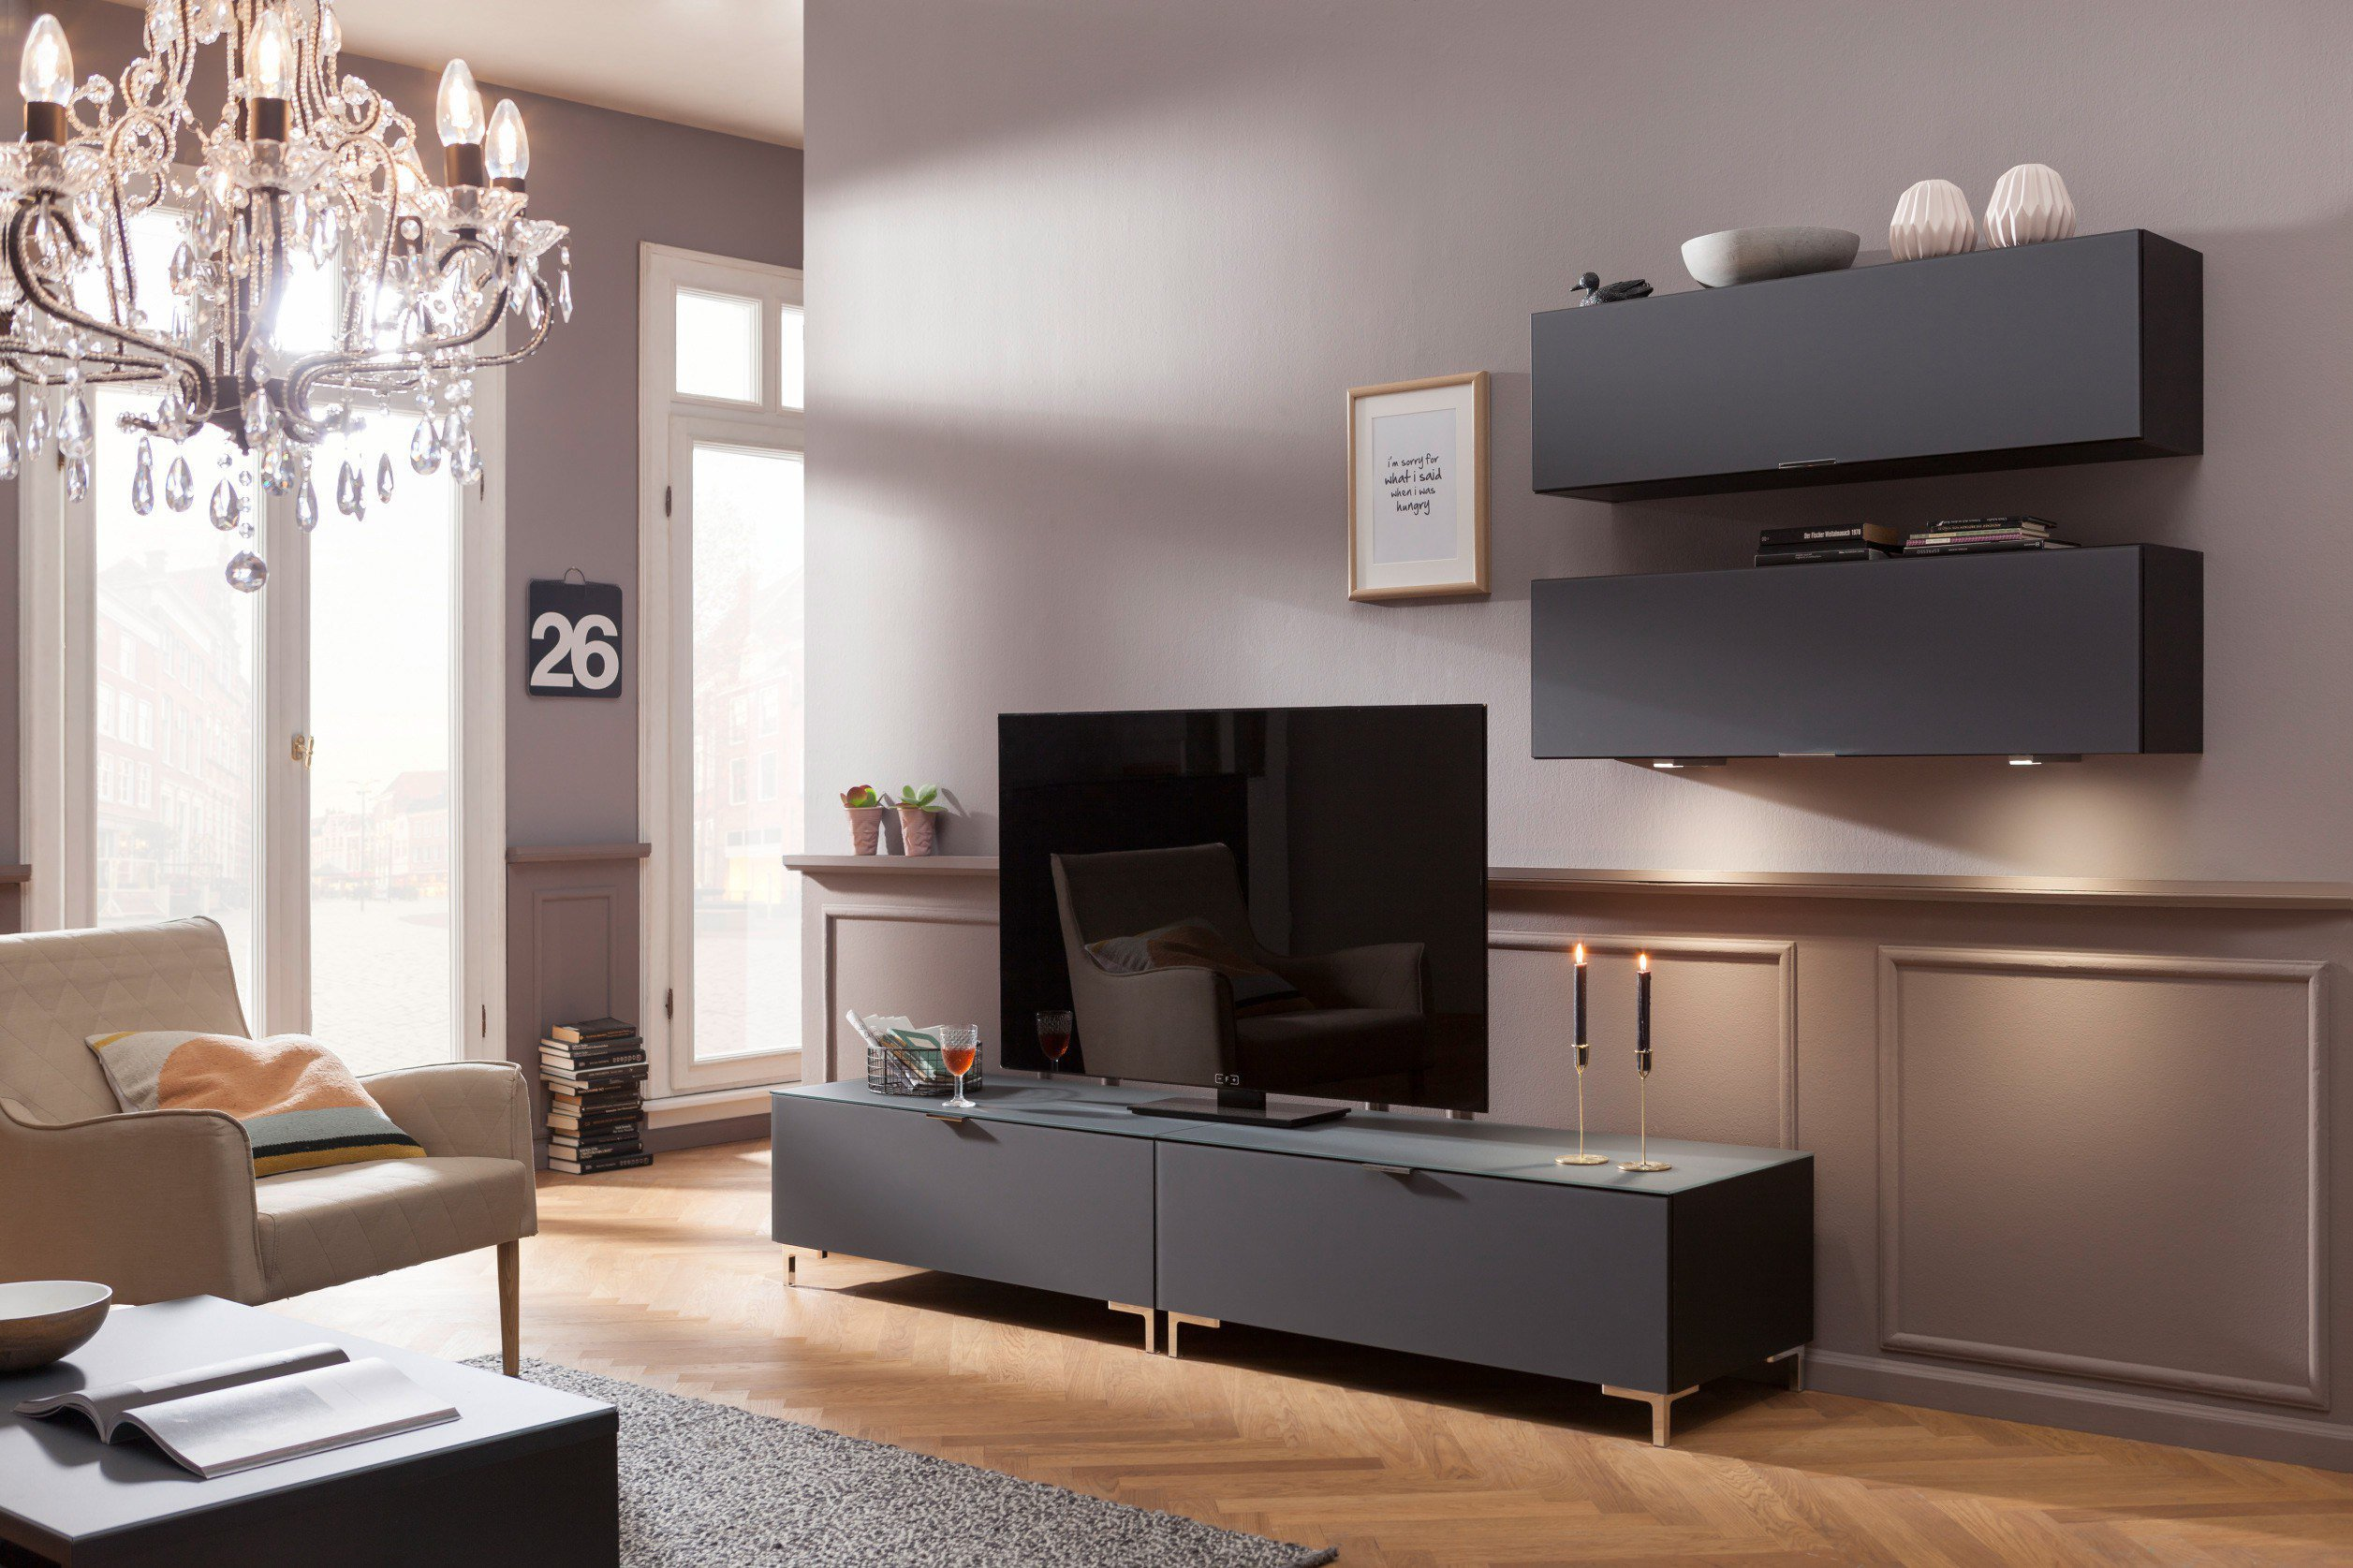 cs schmalm bel wohnwand cleo special edition grau schwarz m bel letz ihr online shop. Black Bedroom Furniture Sets. Home Design Ideas